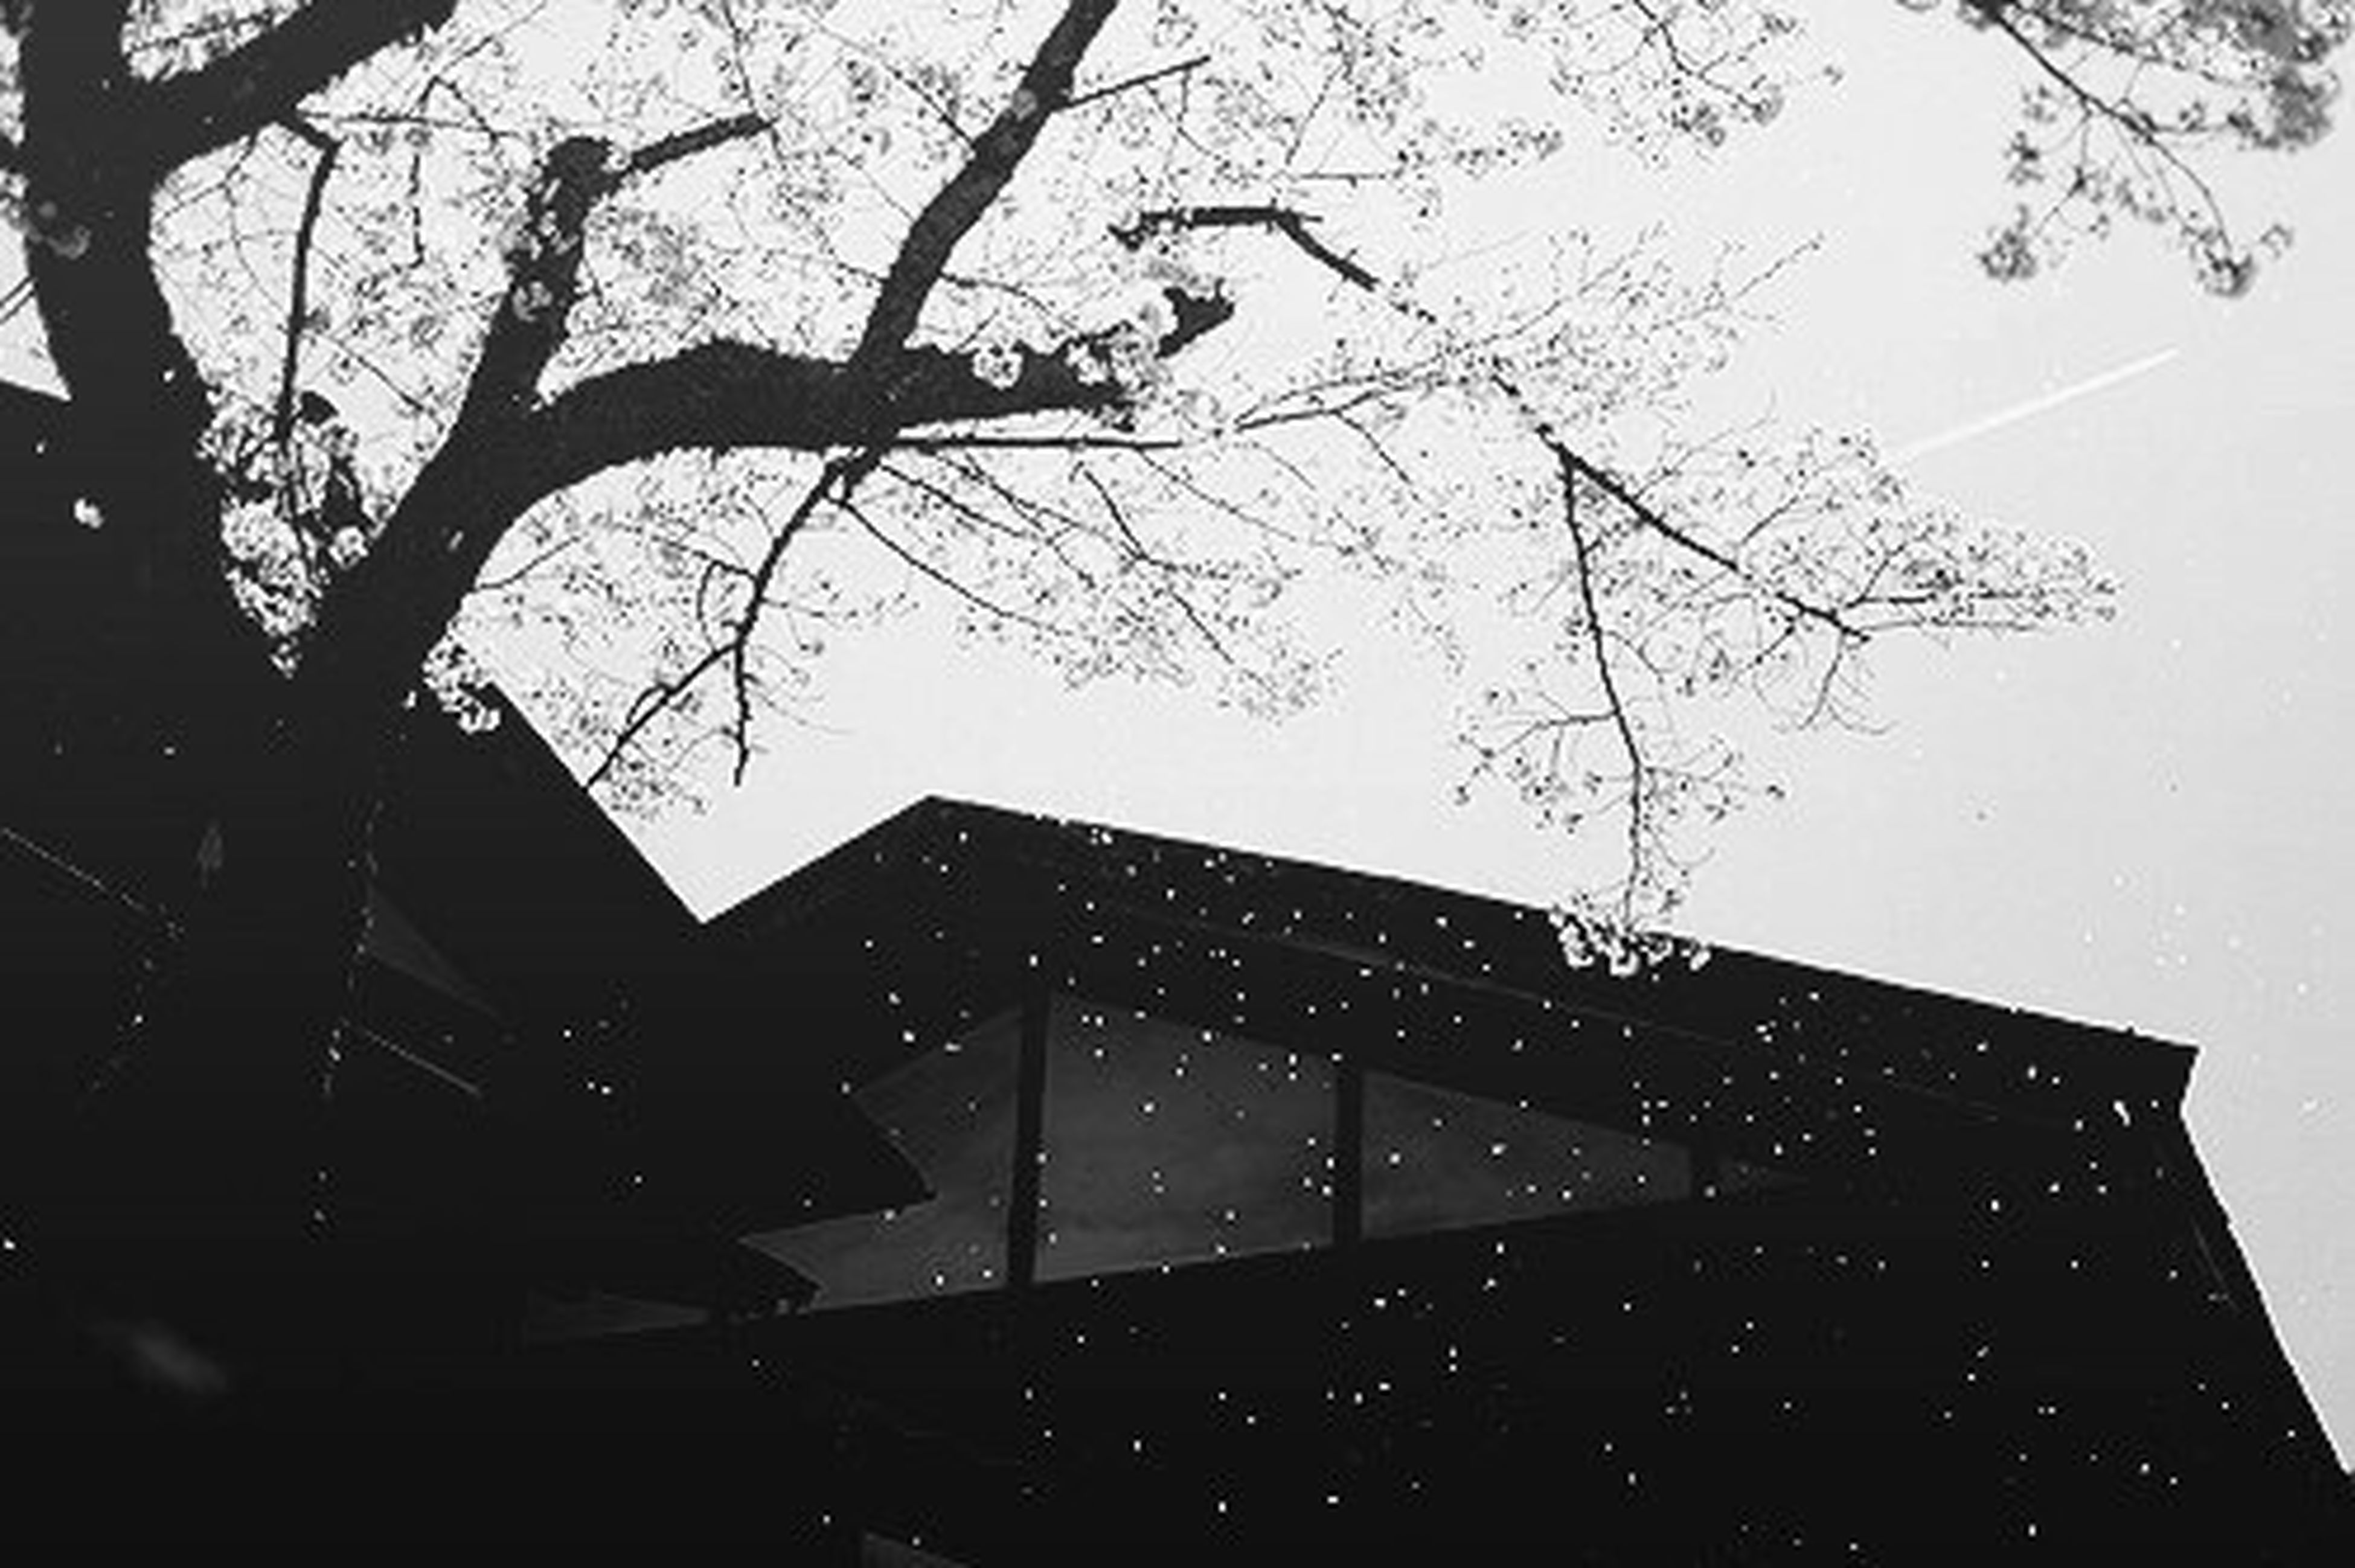 bare tree, branch, tree, low angle view, architecture, building exterior, built structure, sky, silhouette, clear sky, window, dusk, season, no people, outdoors, building, nature, day, weather, city